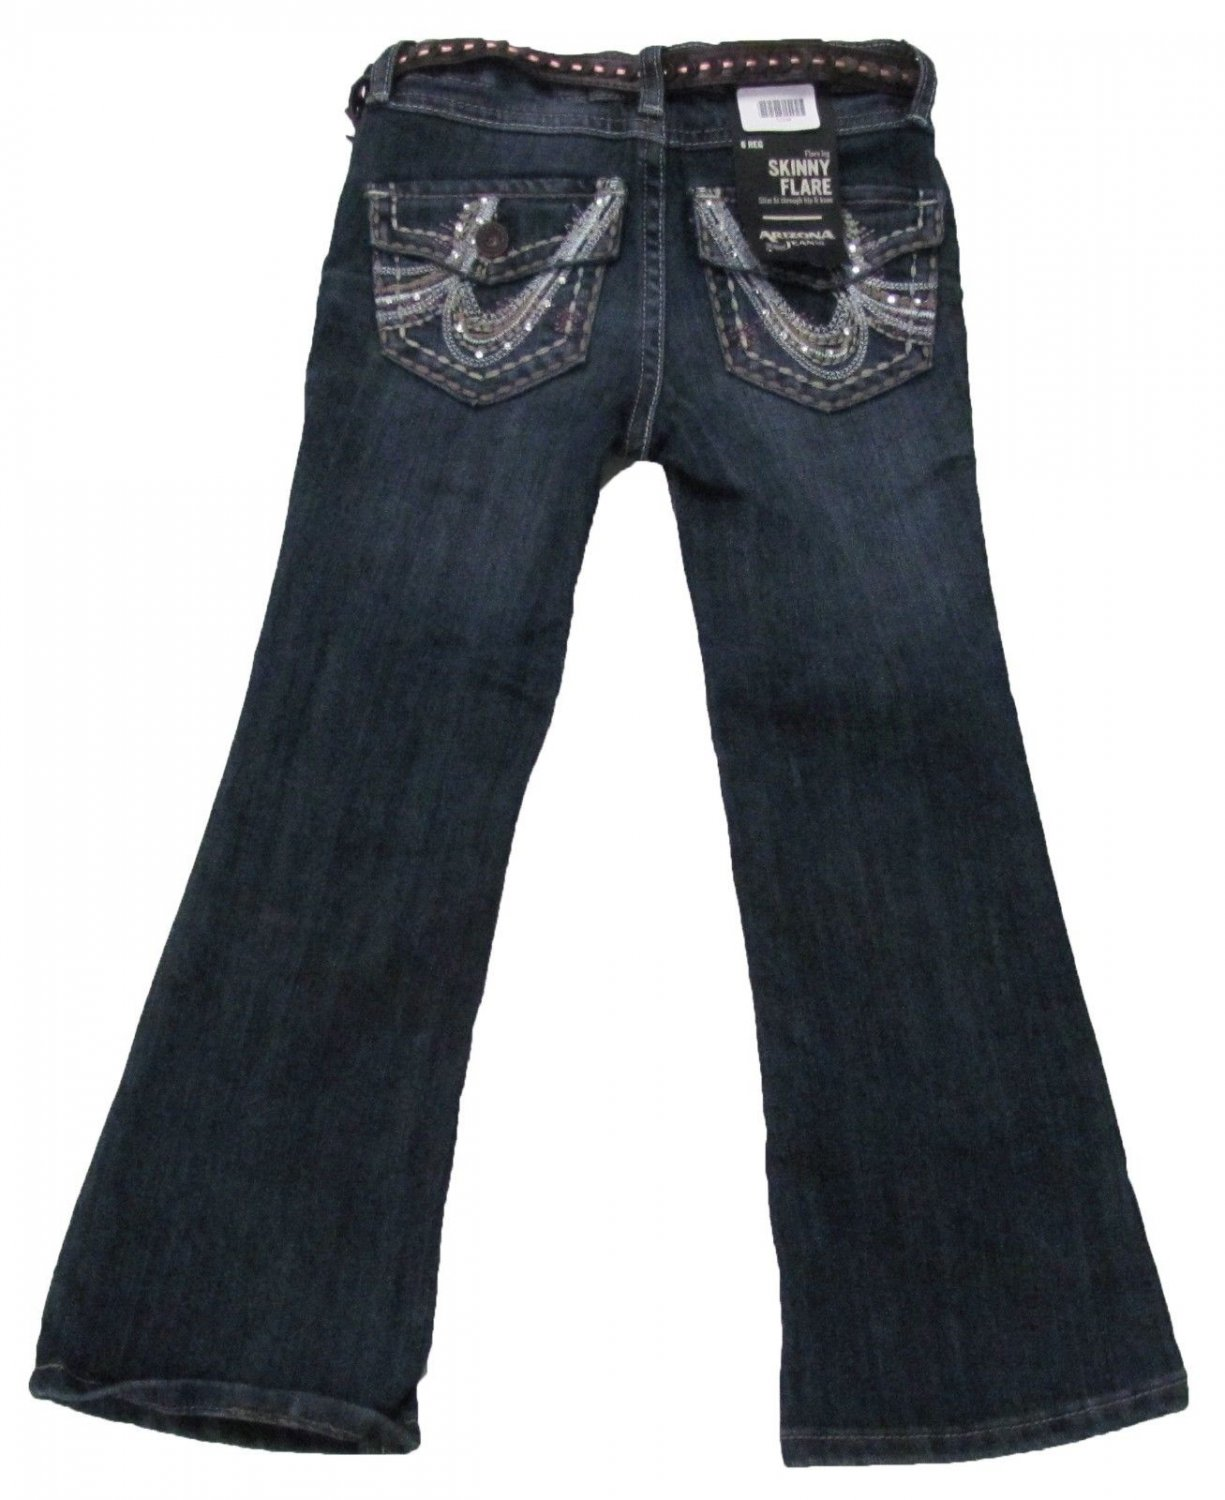 Arizona Girls 10 Skinny Flare Leg Jeans with Brown Belt Clash Madonna Blue Youth